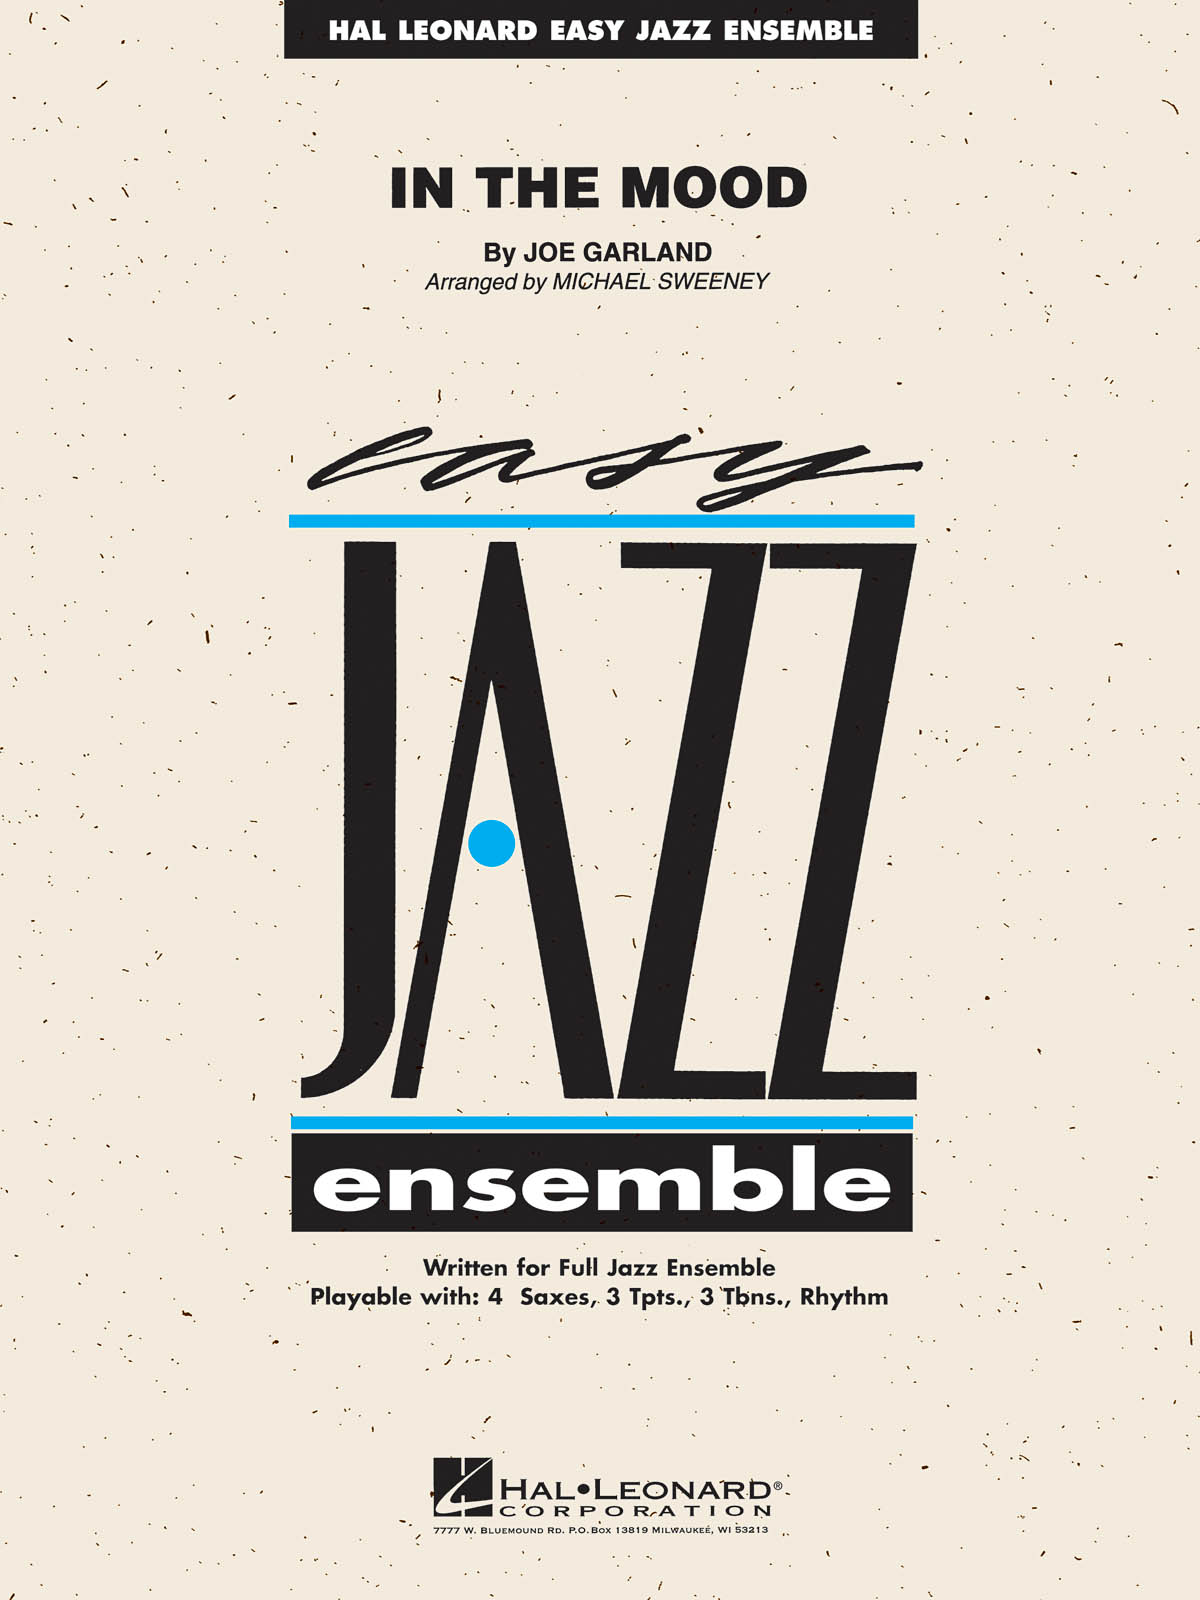 In the Mood: Easy Jazz Ensemble